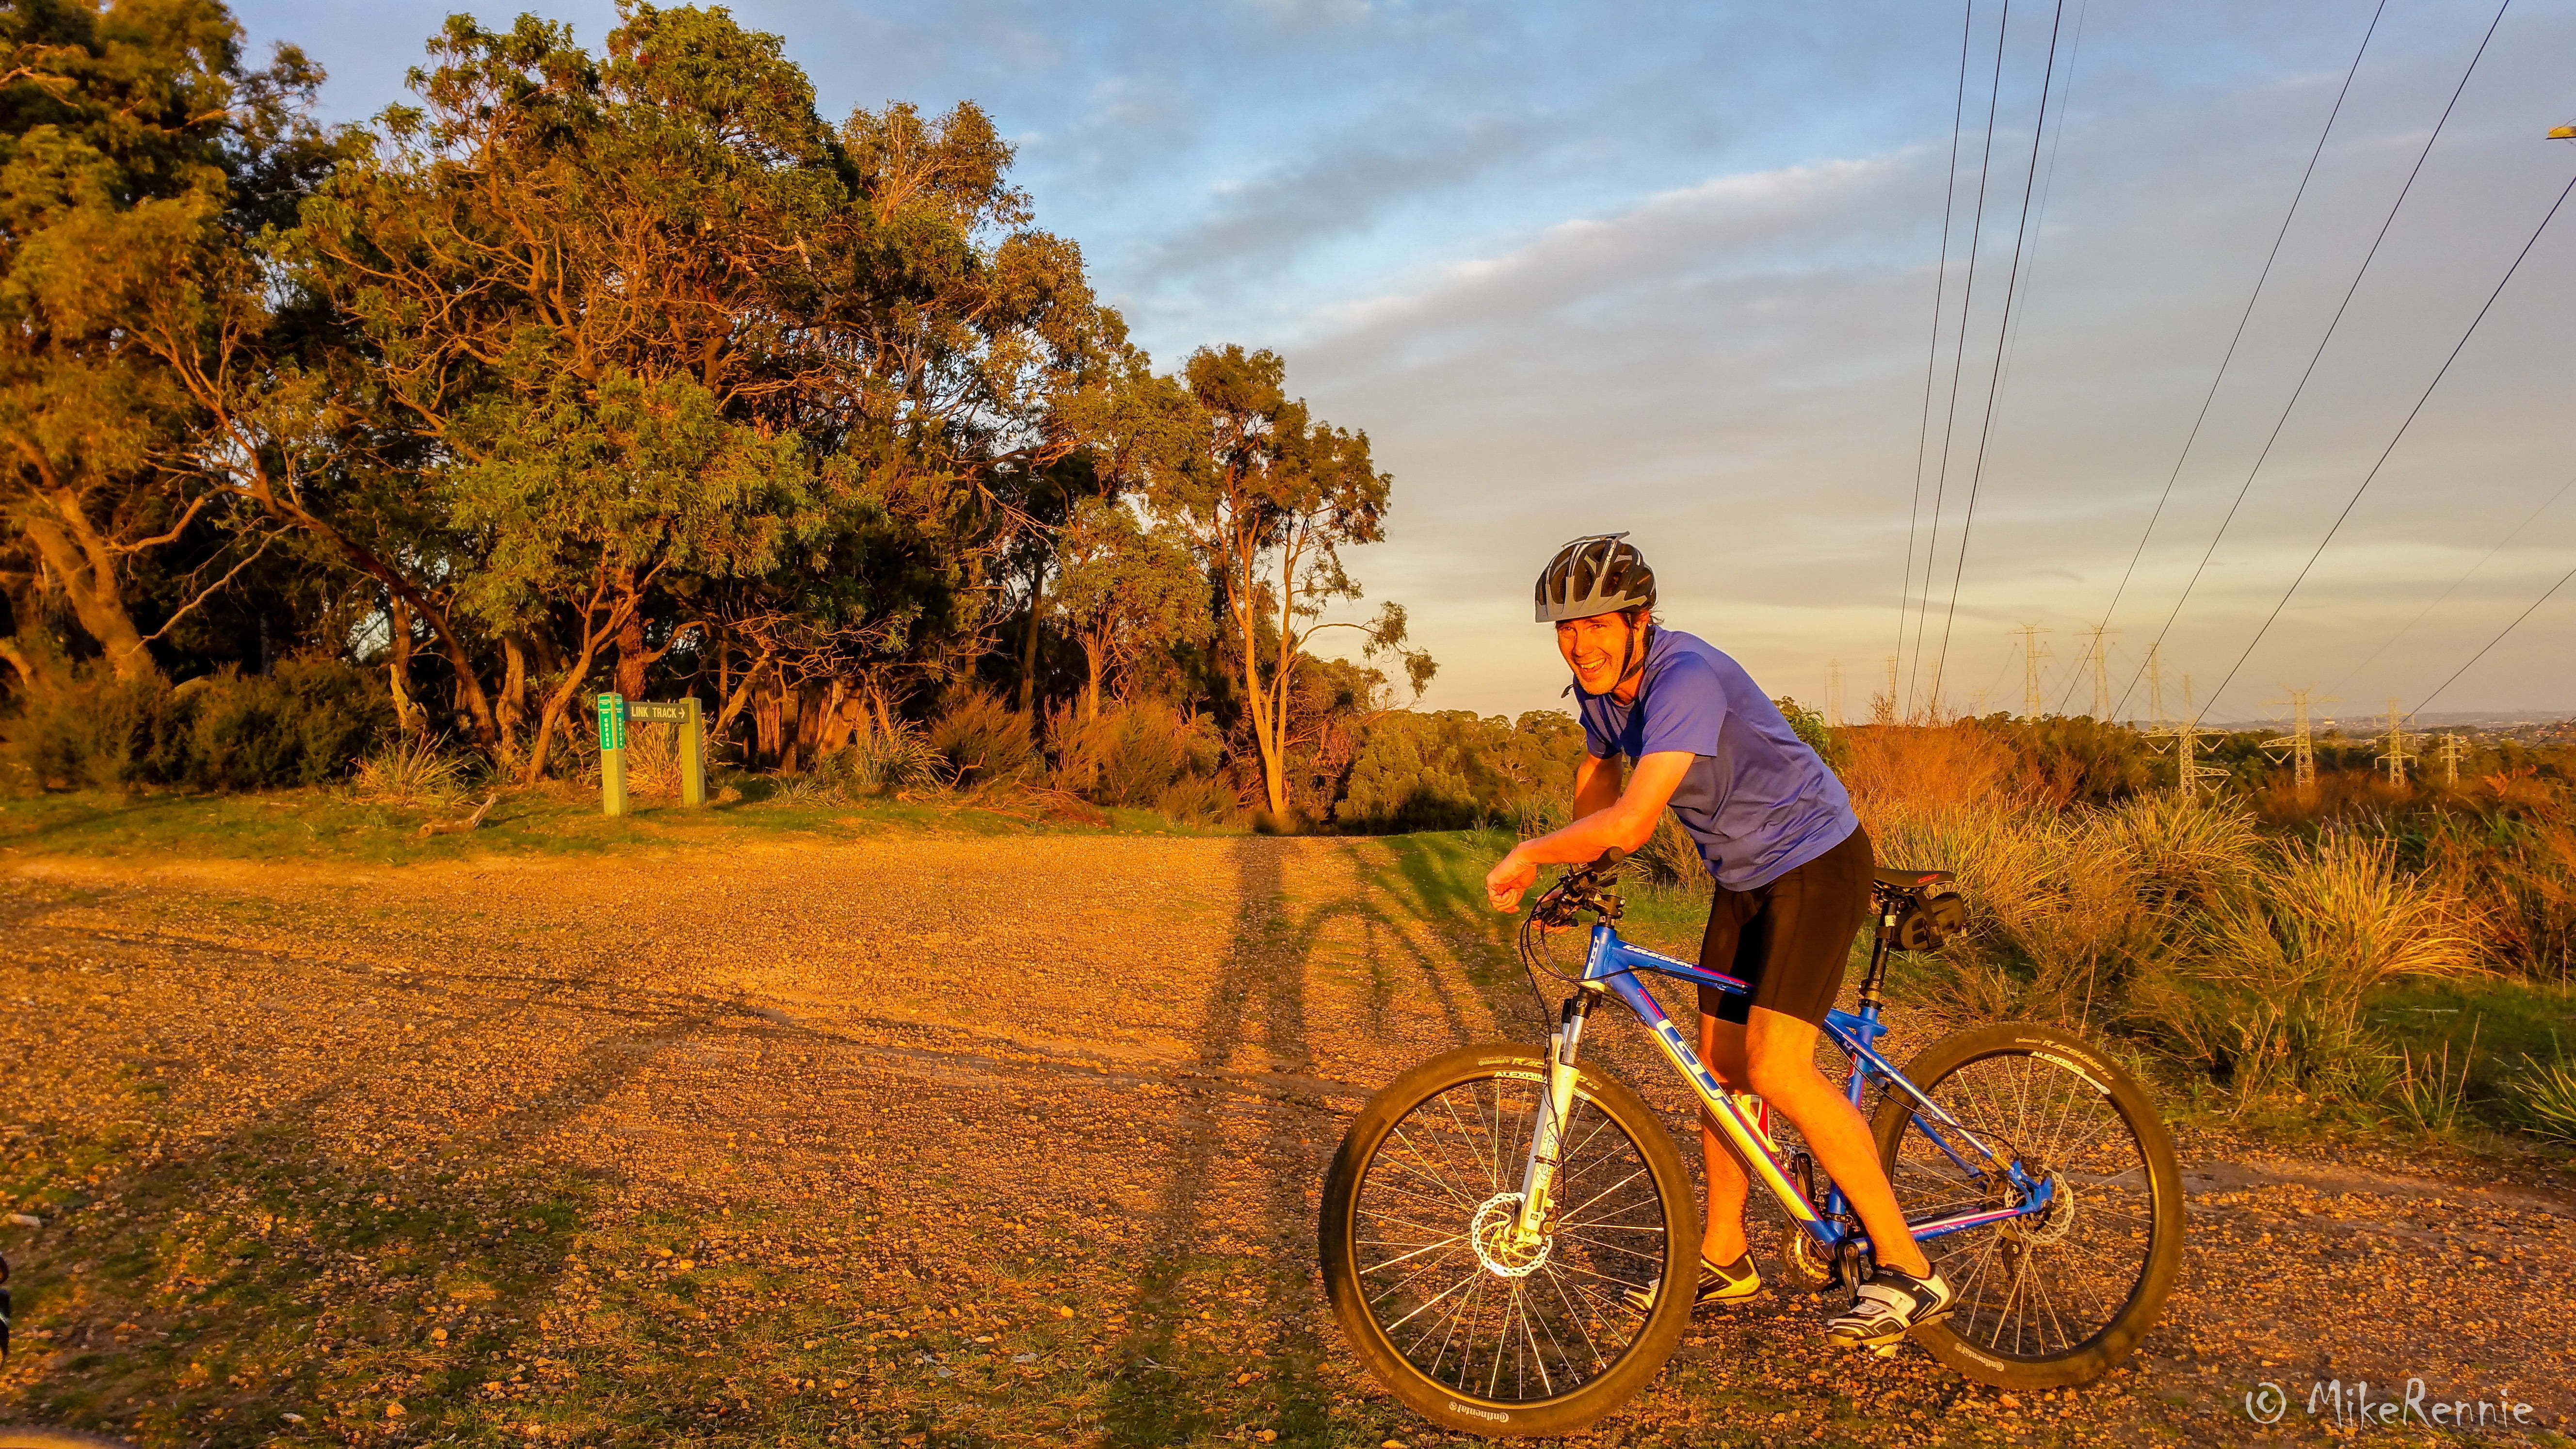 Gavin Burren resting on his bike, basked in a golden light atop a hill on North Boundary Track with 360-degree views of Melbourne. Photo taken while mountain biking at Churchill National Park during sunset by Mike Rennie on Friday 15 May 2016.